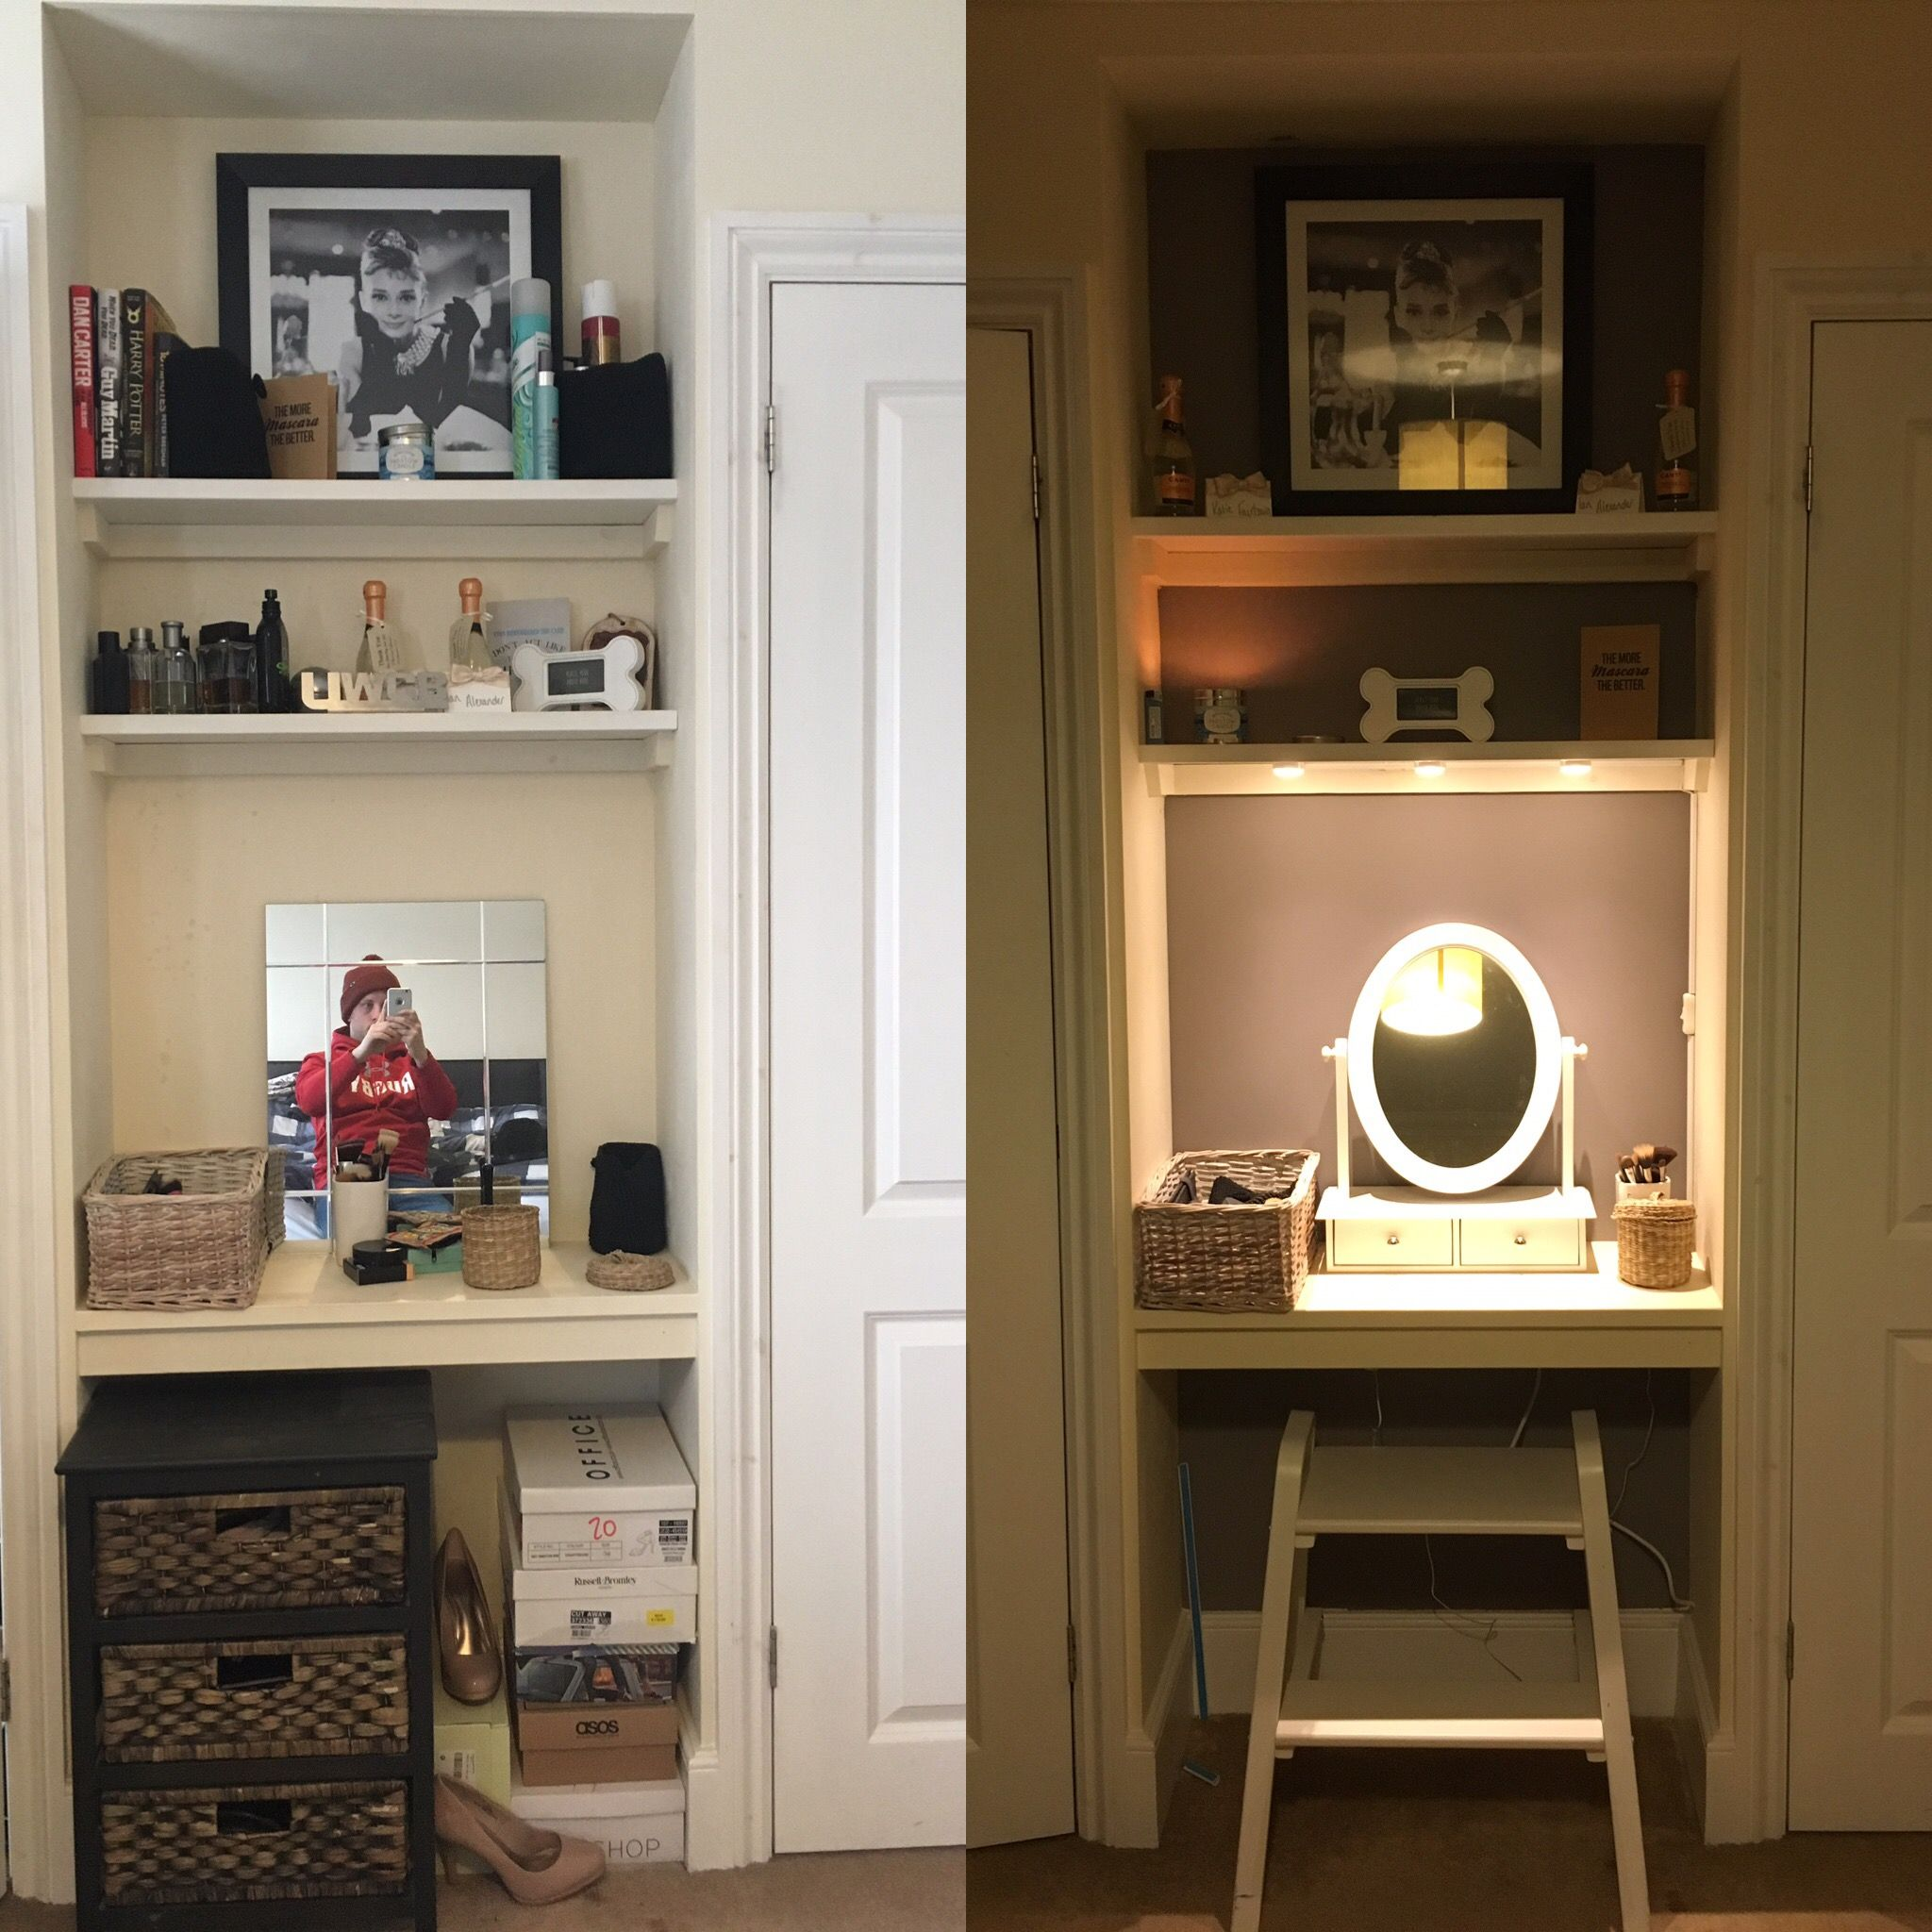 Transformed a small alcove in between wardrobes to make a dressing table.